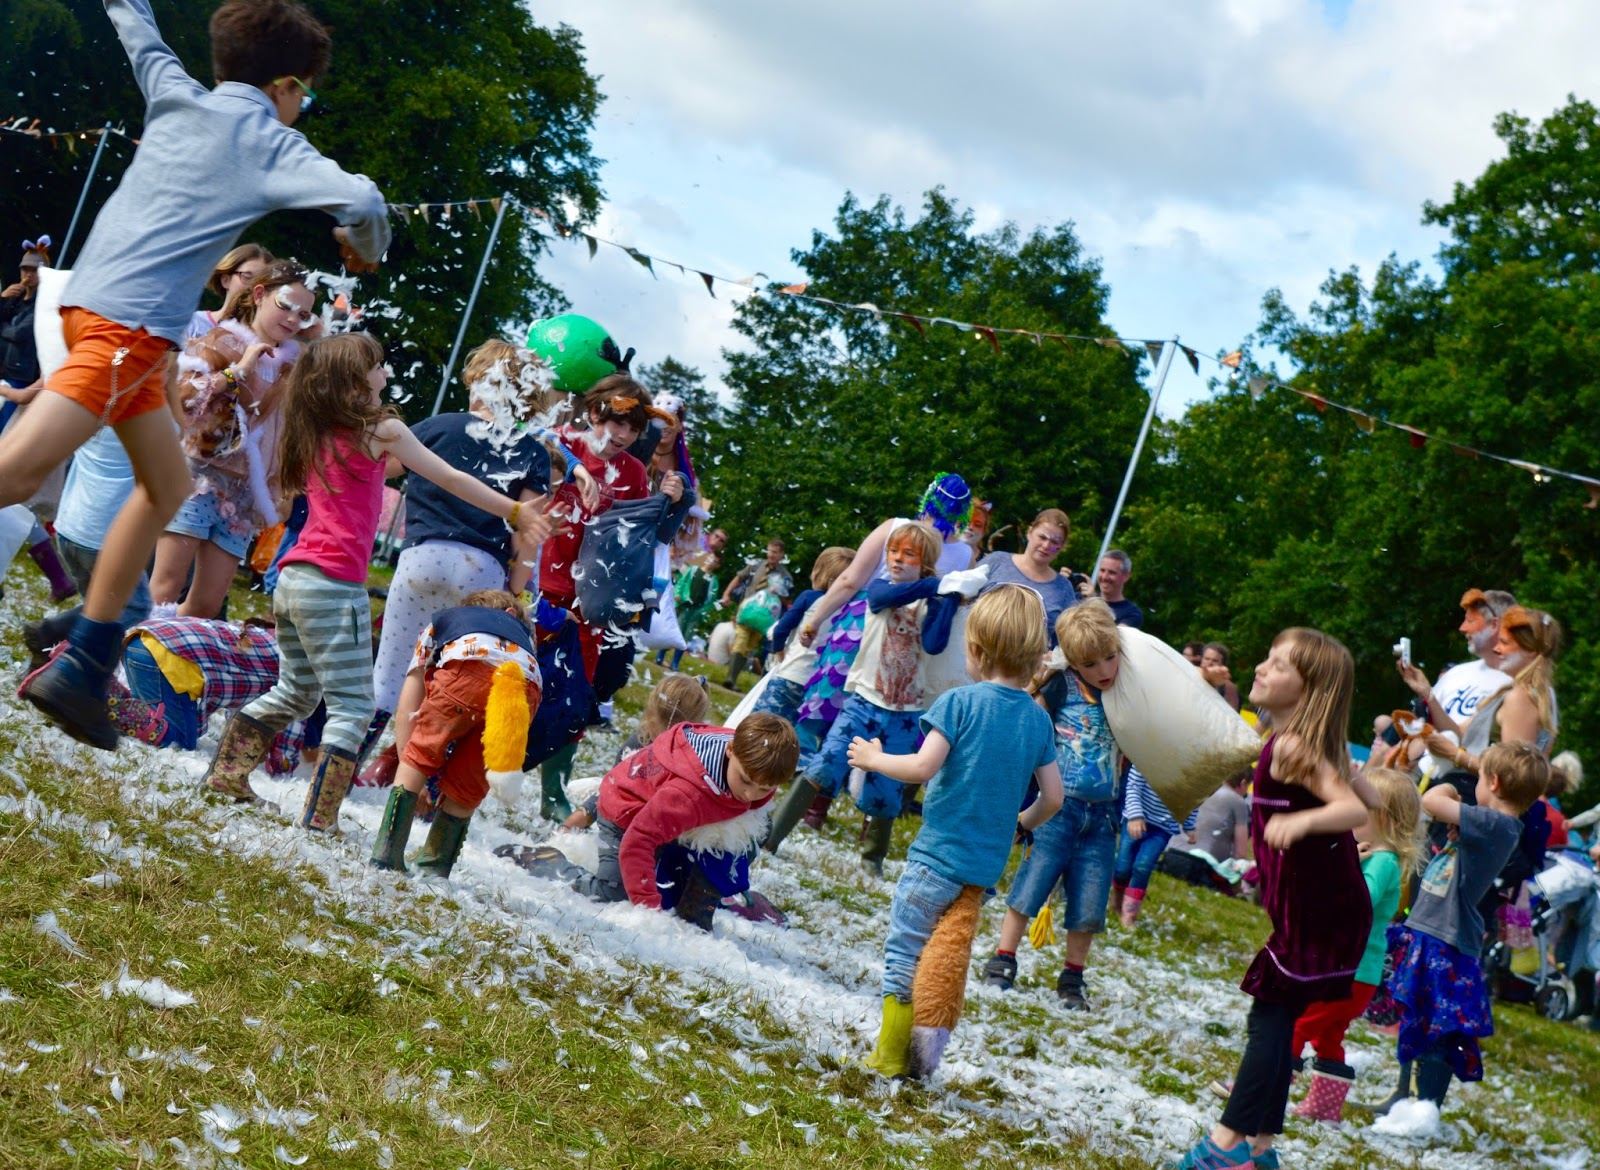 10 of the best family festivals within a 3 hour drive of Newcastle  - Just So Festival Pillow Fight